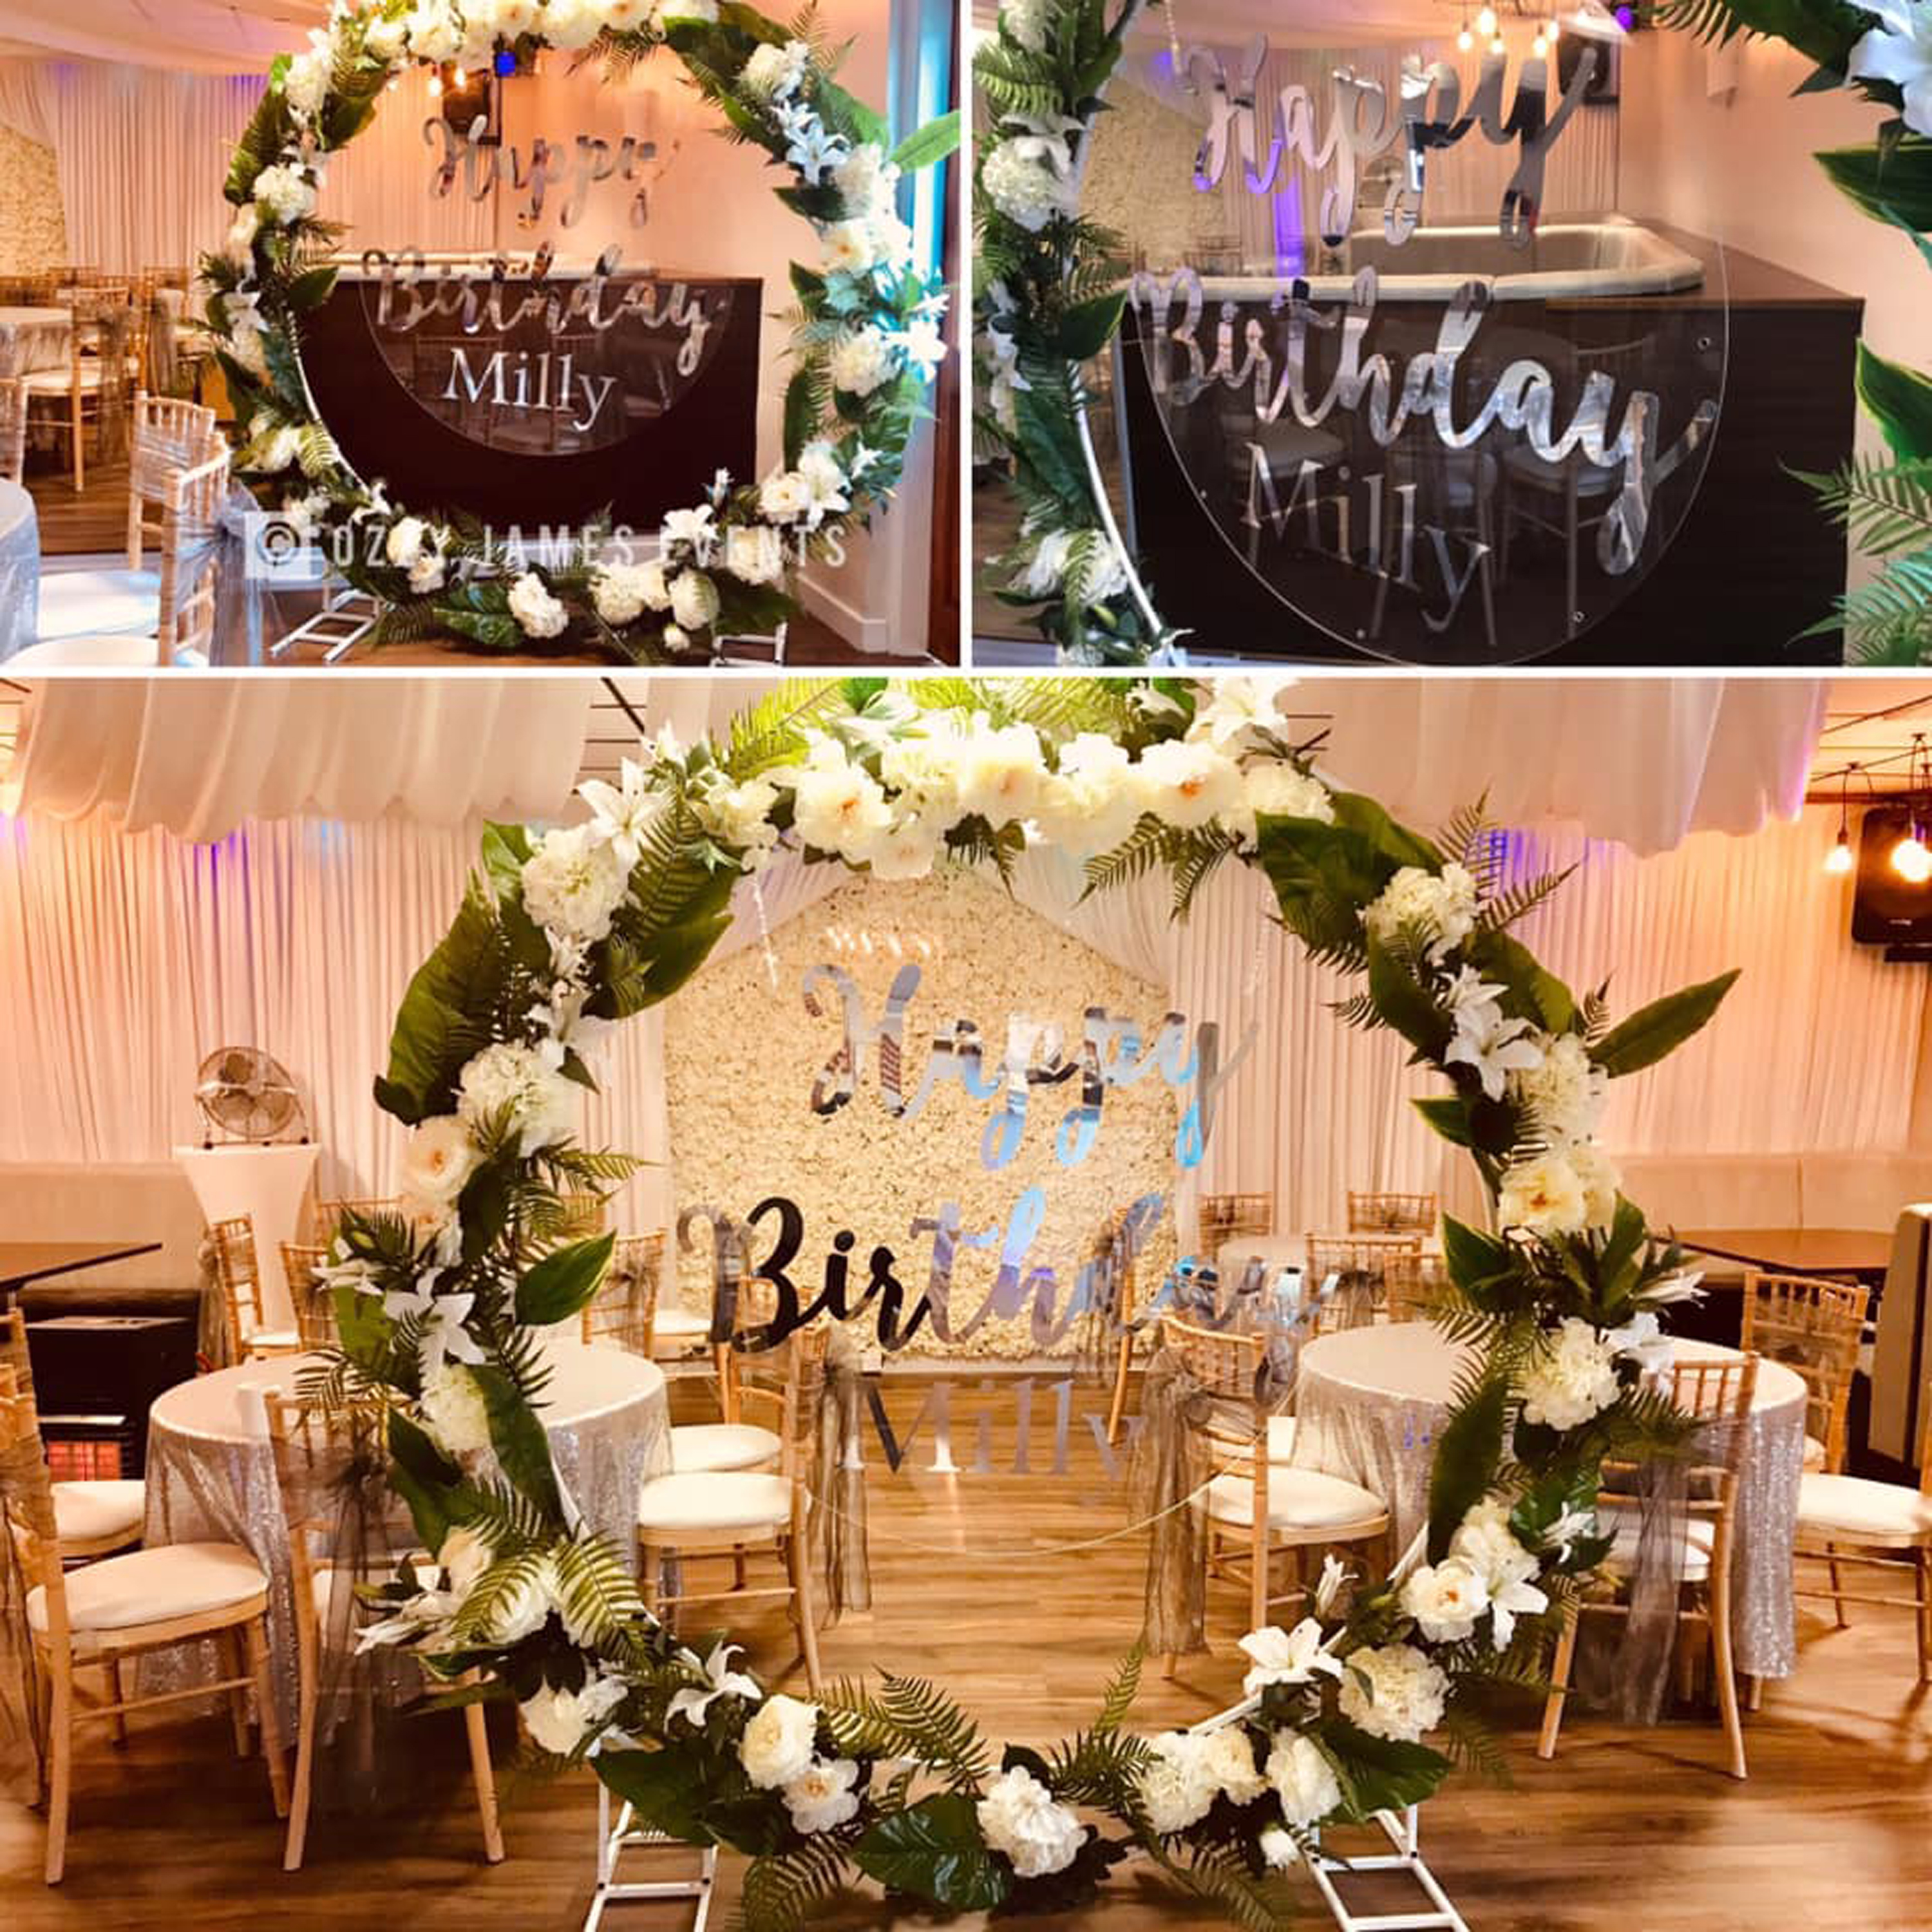 Floral moon floral wedding ceremony moon floral hoop hire ozzy james events